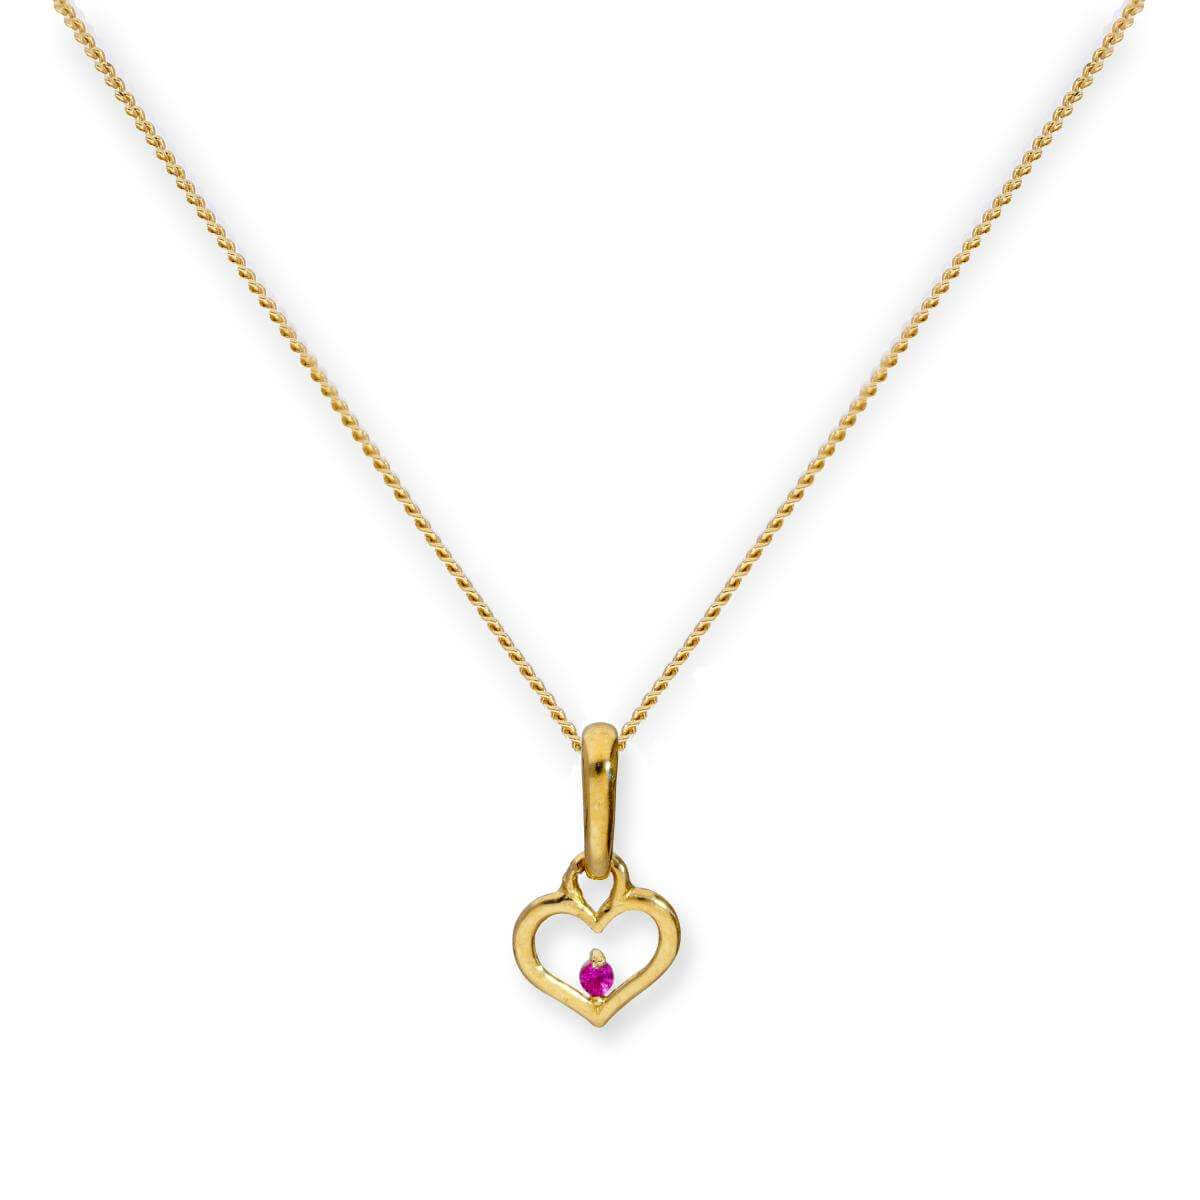 9ct Gold Heart Outline w Ruby CZ Crystal Pendant Necklace 16 - 20 Inches